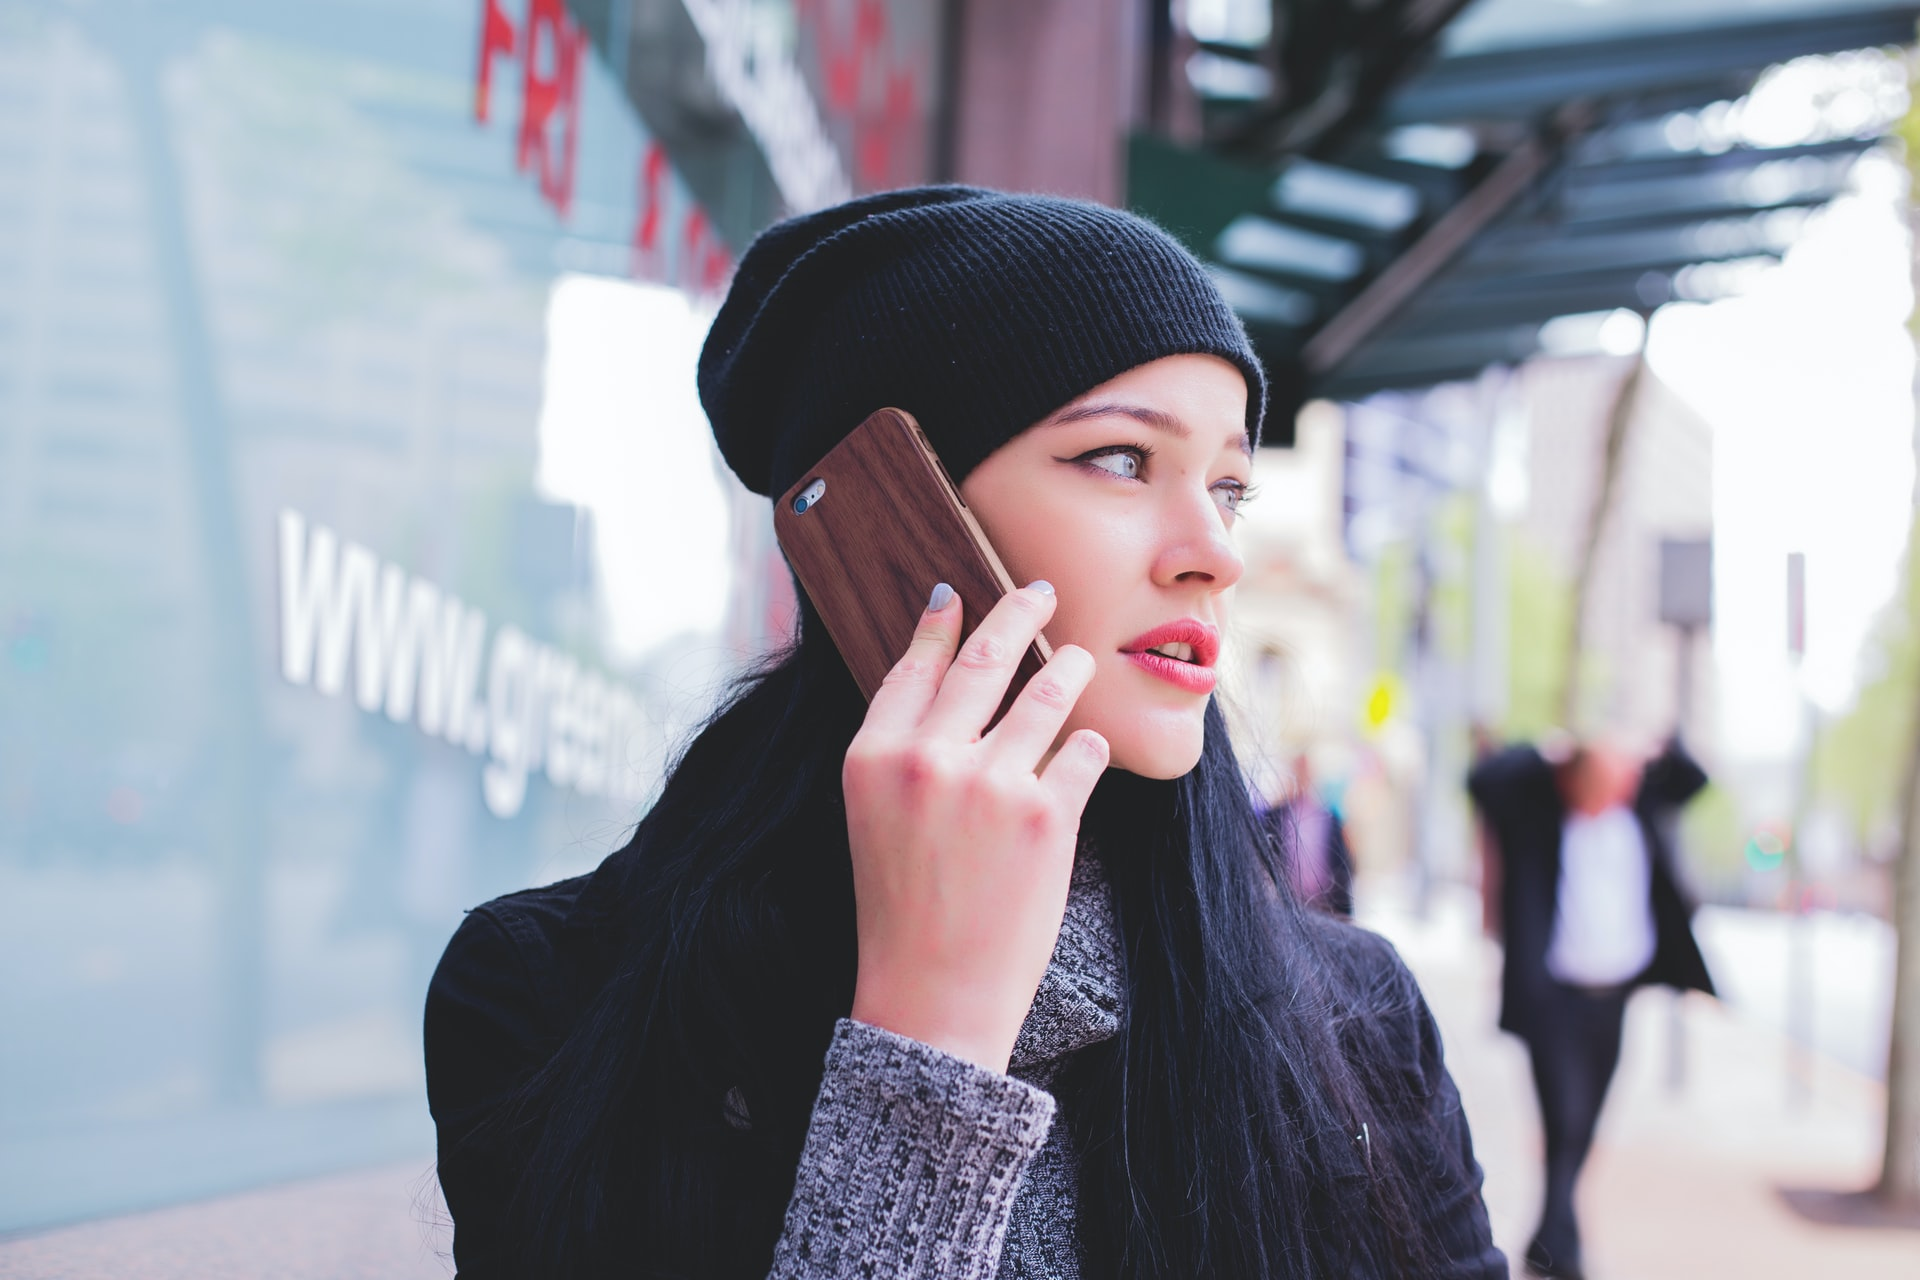 A woman wearing a beanie talks into a smartphone.